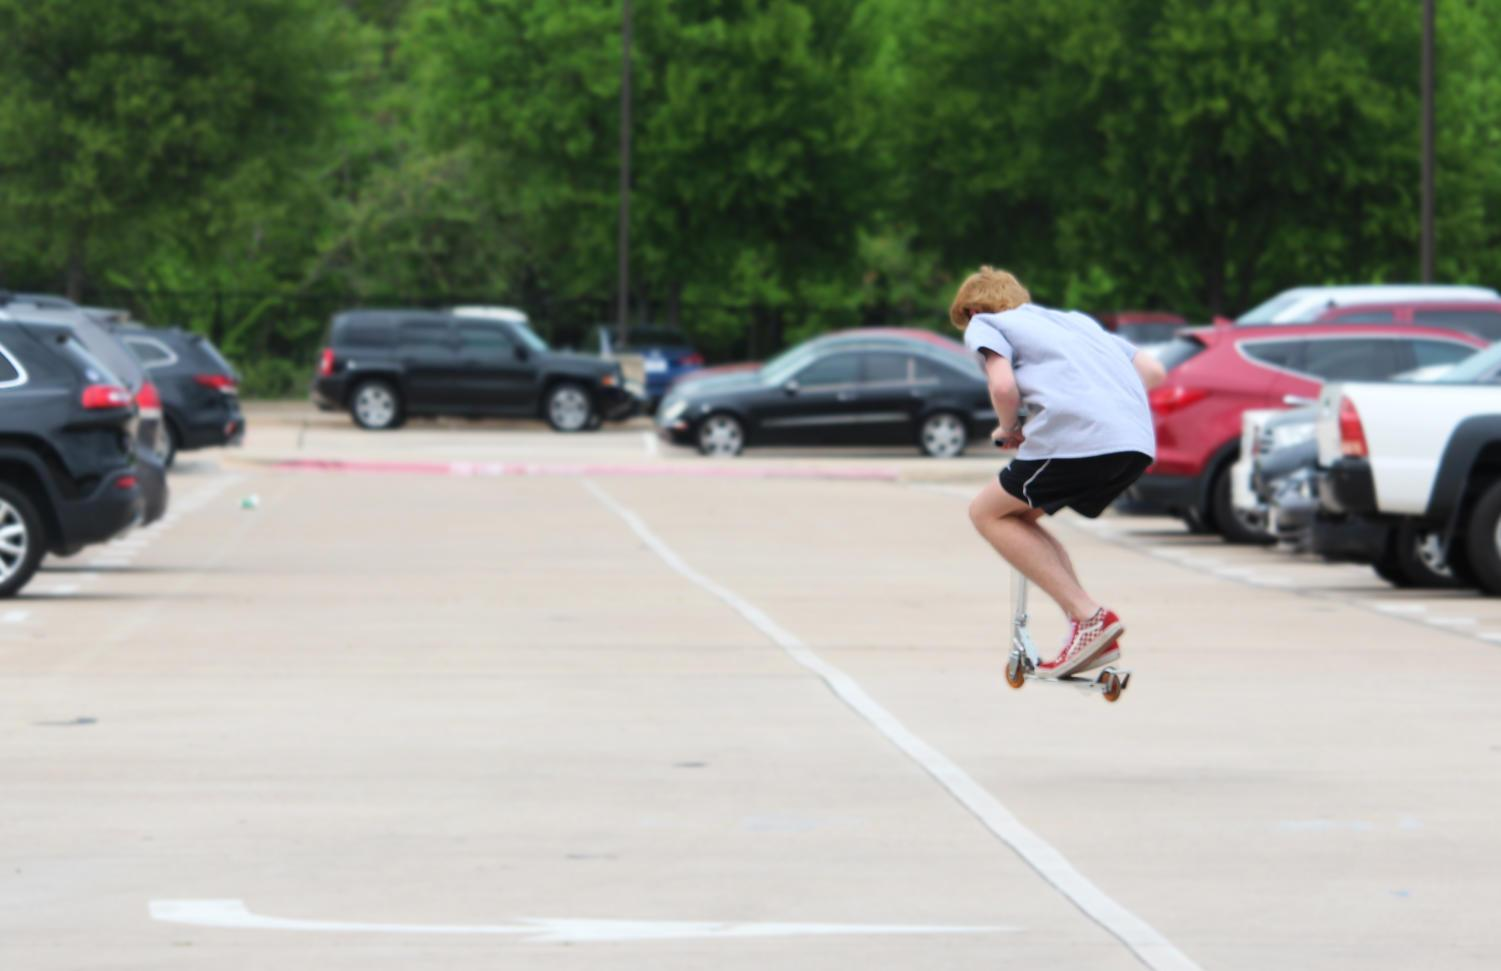 A student does a jump on his scooter in the student parking lot as students are released after fourth period for eighth period release. In the student parking lot students can be seen walking to or from their cars listening to music, talking to their friends and looking at their phones all while dodging traffic.